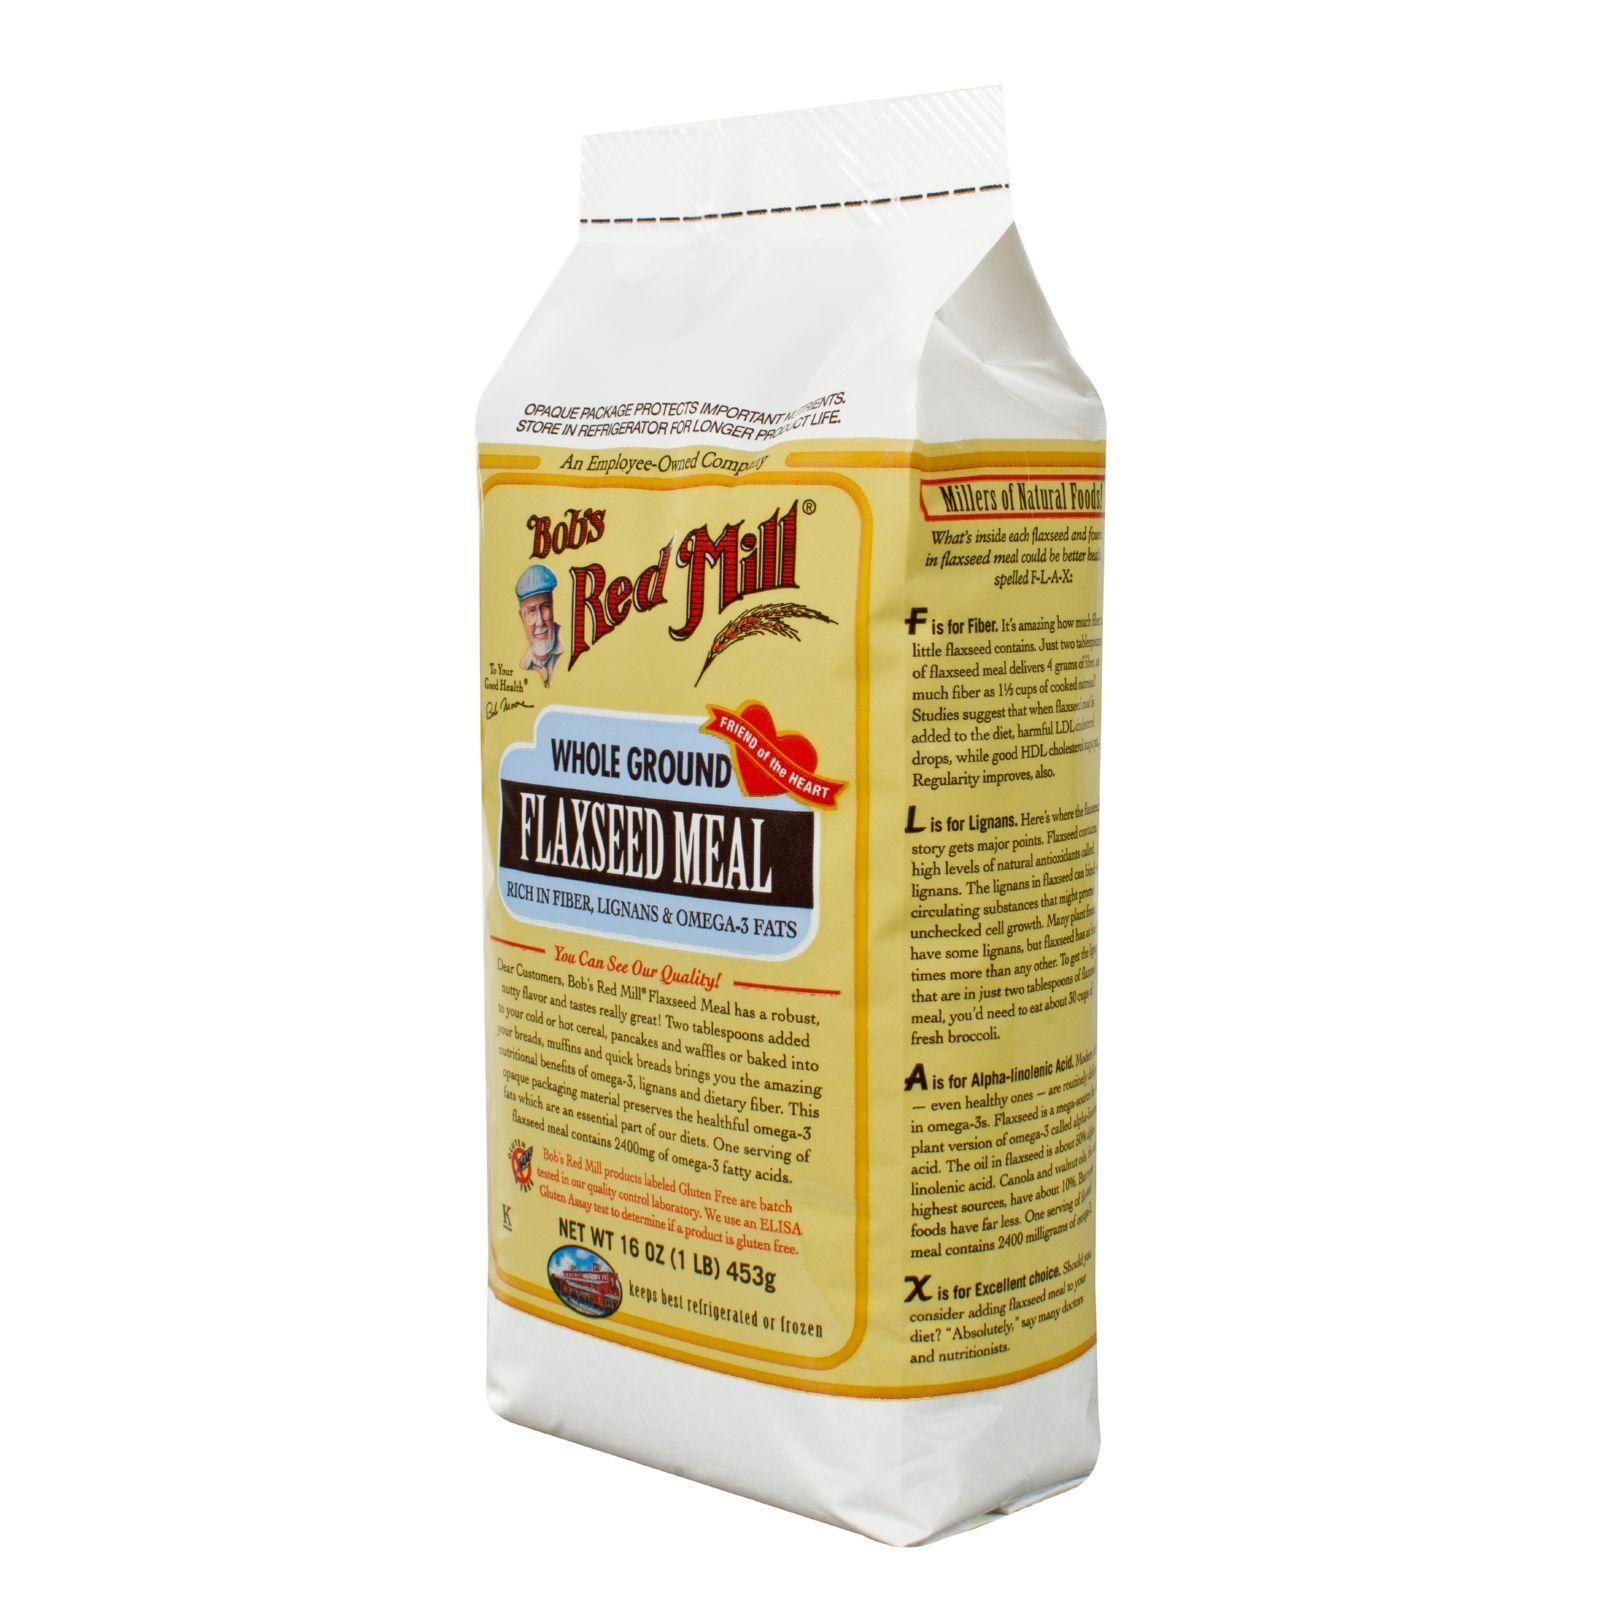 Bob's Red Mill Brown Flaxseed Meal - 16 Oz - Case Of 4 #flaxseedmealrecipes Bob's Red Mill Flaxseed Meal offers a wonderful nutritional boost to almost any recipe. 1800mg of Omega-3 fatty acids, 4g of fiber, and lignans make for a heart-healthy nutritional combination. Mild in flavor and ground for maximum bioavailability of nutrients, Flaxseed Meal can be inconspicuously added to almost any recipe - smoothies, shakes, breads, cookies, pancakes, waffles, and more. Sprinkle on eggs or salad green #flaxseedmealrecipes